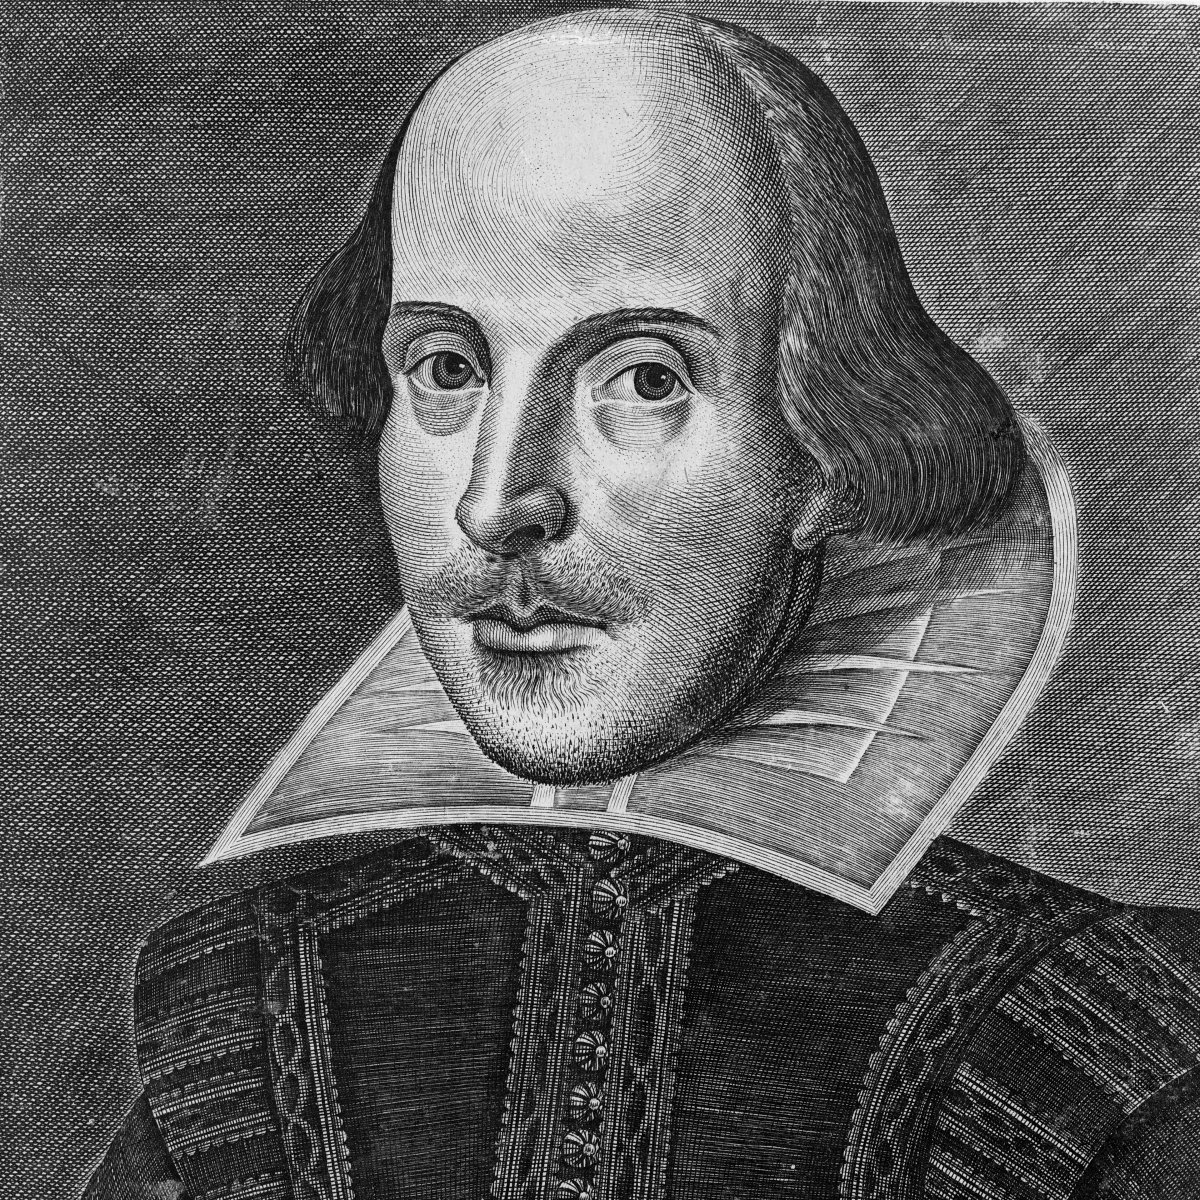 Martin's Droeshout portrait of William Shakespeare